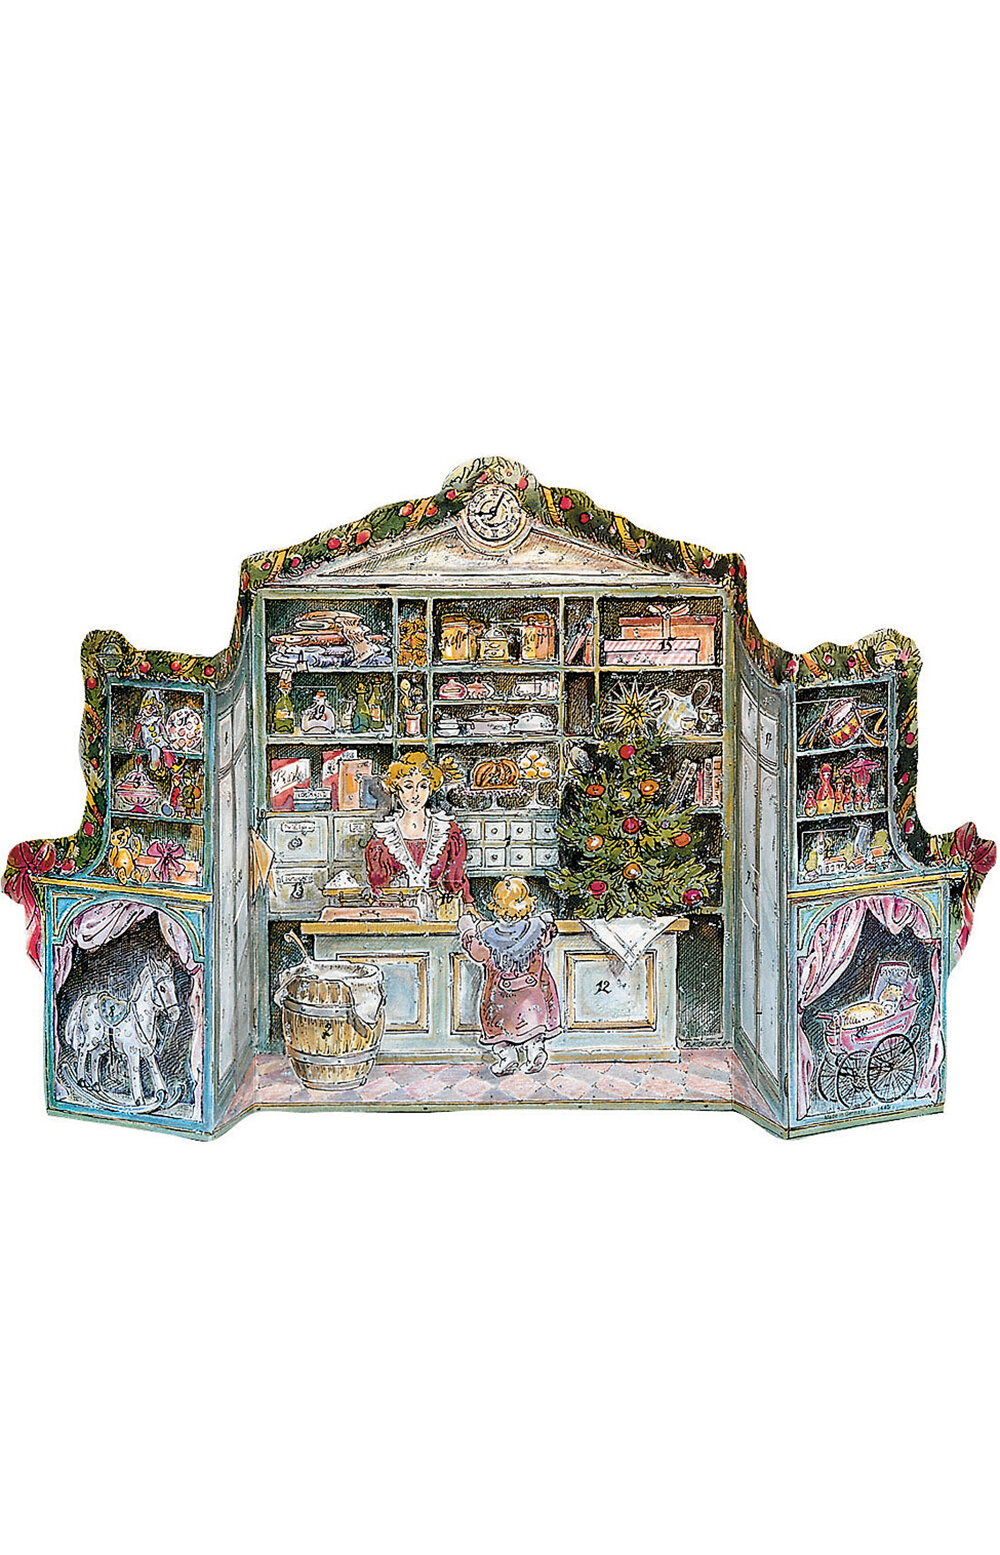 The Holiday Aisle Raci 3 Dimensional Victorian Store Advent Calendar Reviews Wayfair